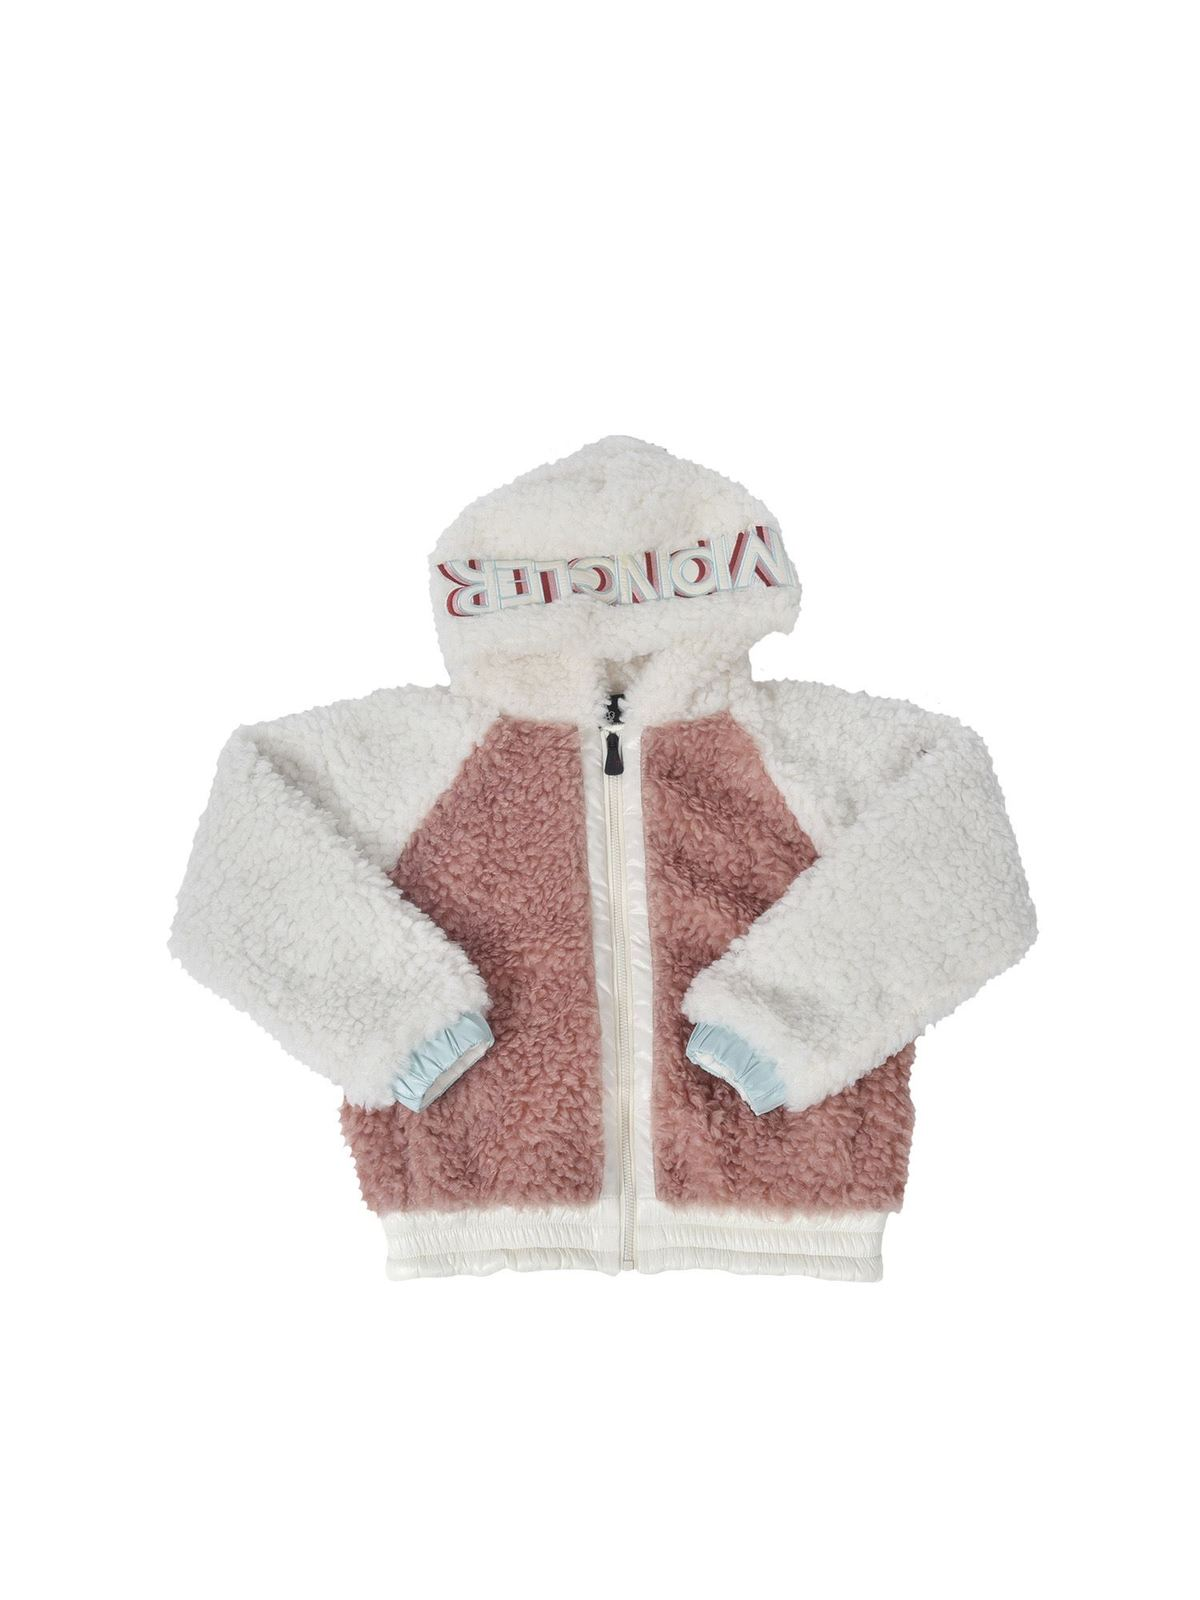 MONCLER JR TEDDY EFFECT JACKET IN WHITE AND PINK